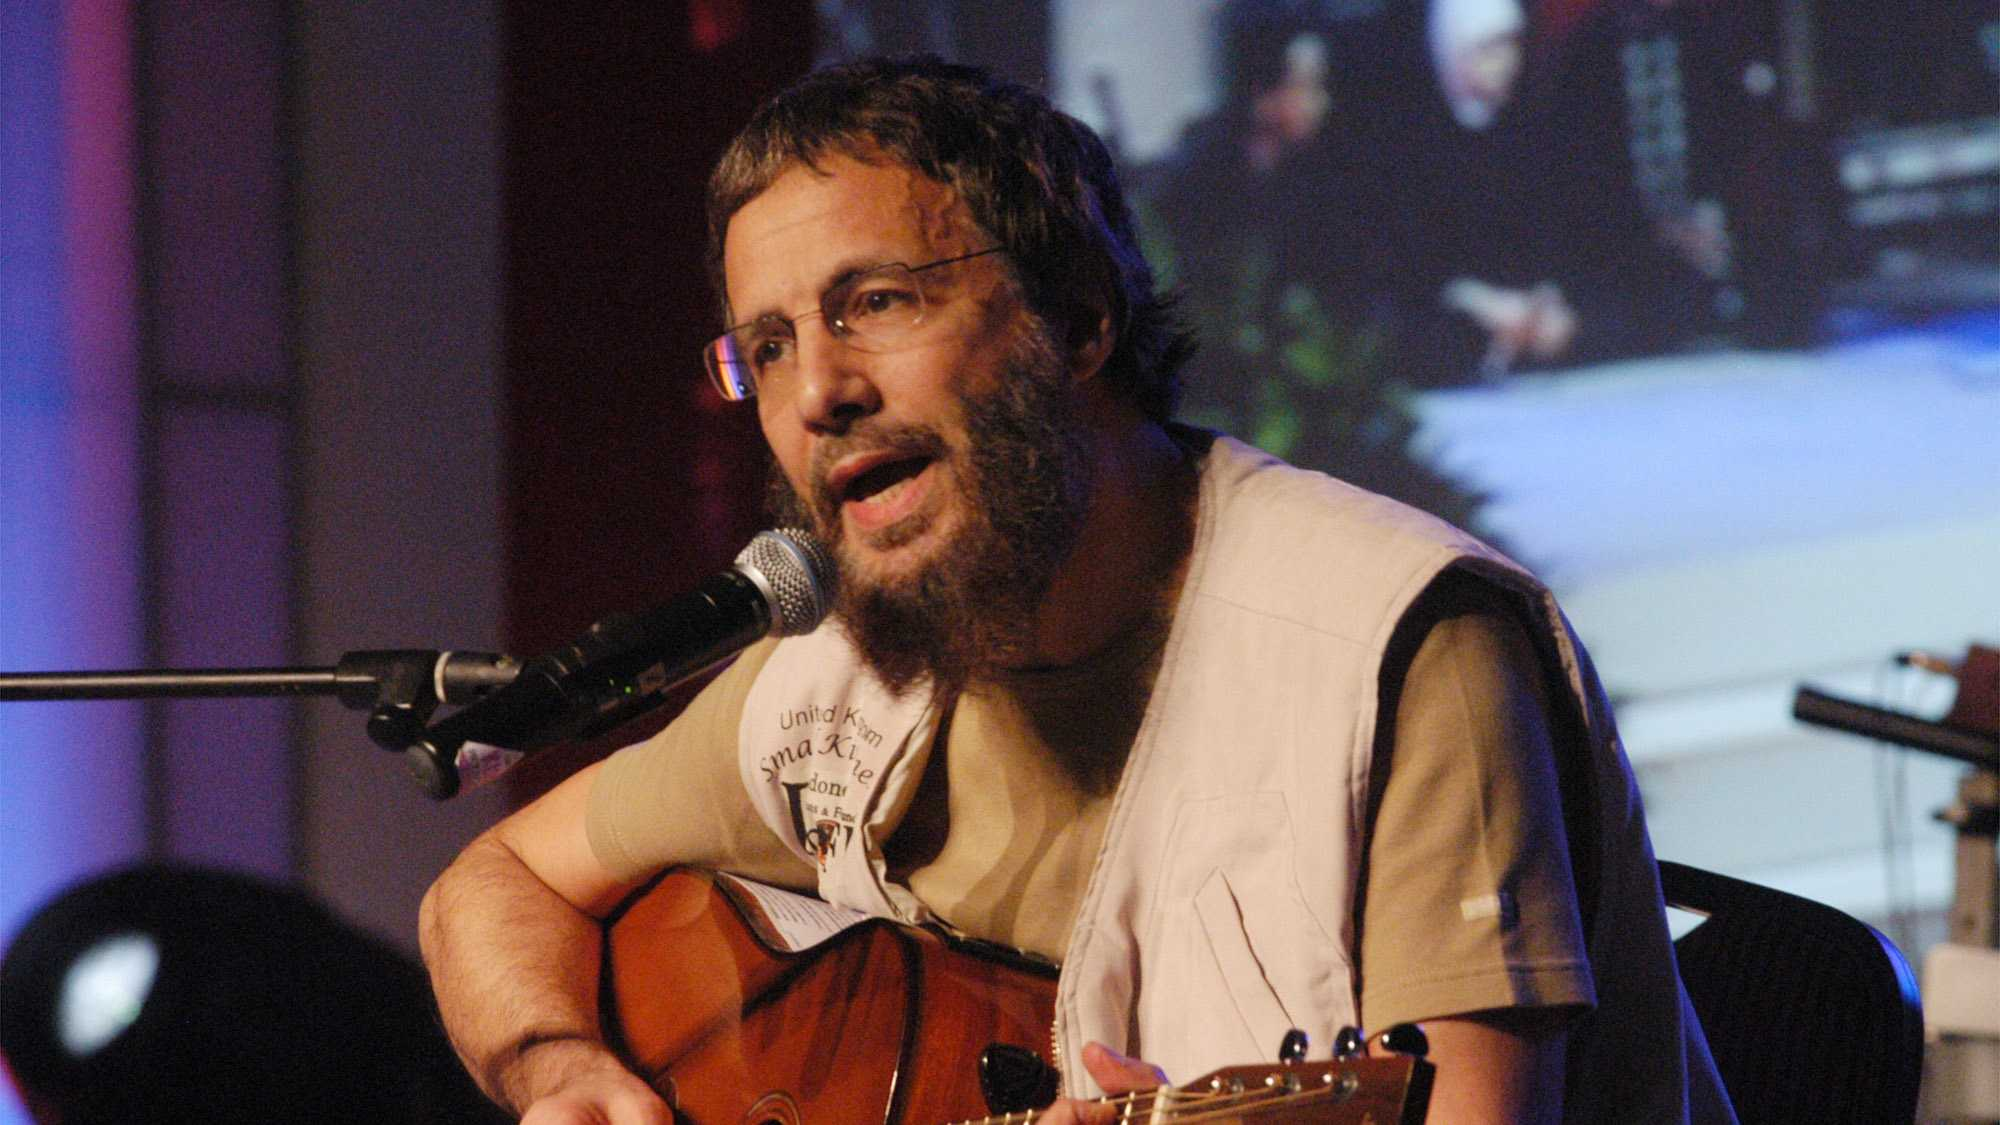 Yusuf Islam, the singer formerly known as Cat Stevens, performs during a fund-raising concert for the tsunami victims in Jakarta, Indonesia, Monday, Jan. 31, 2005.